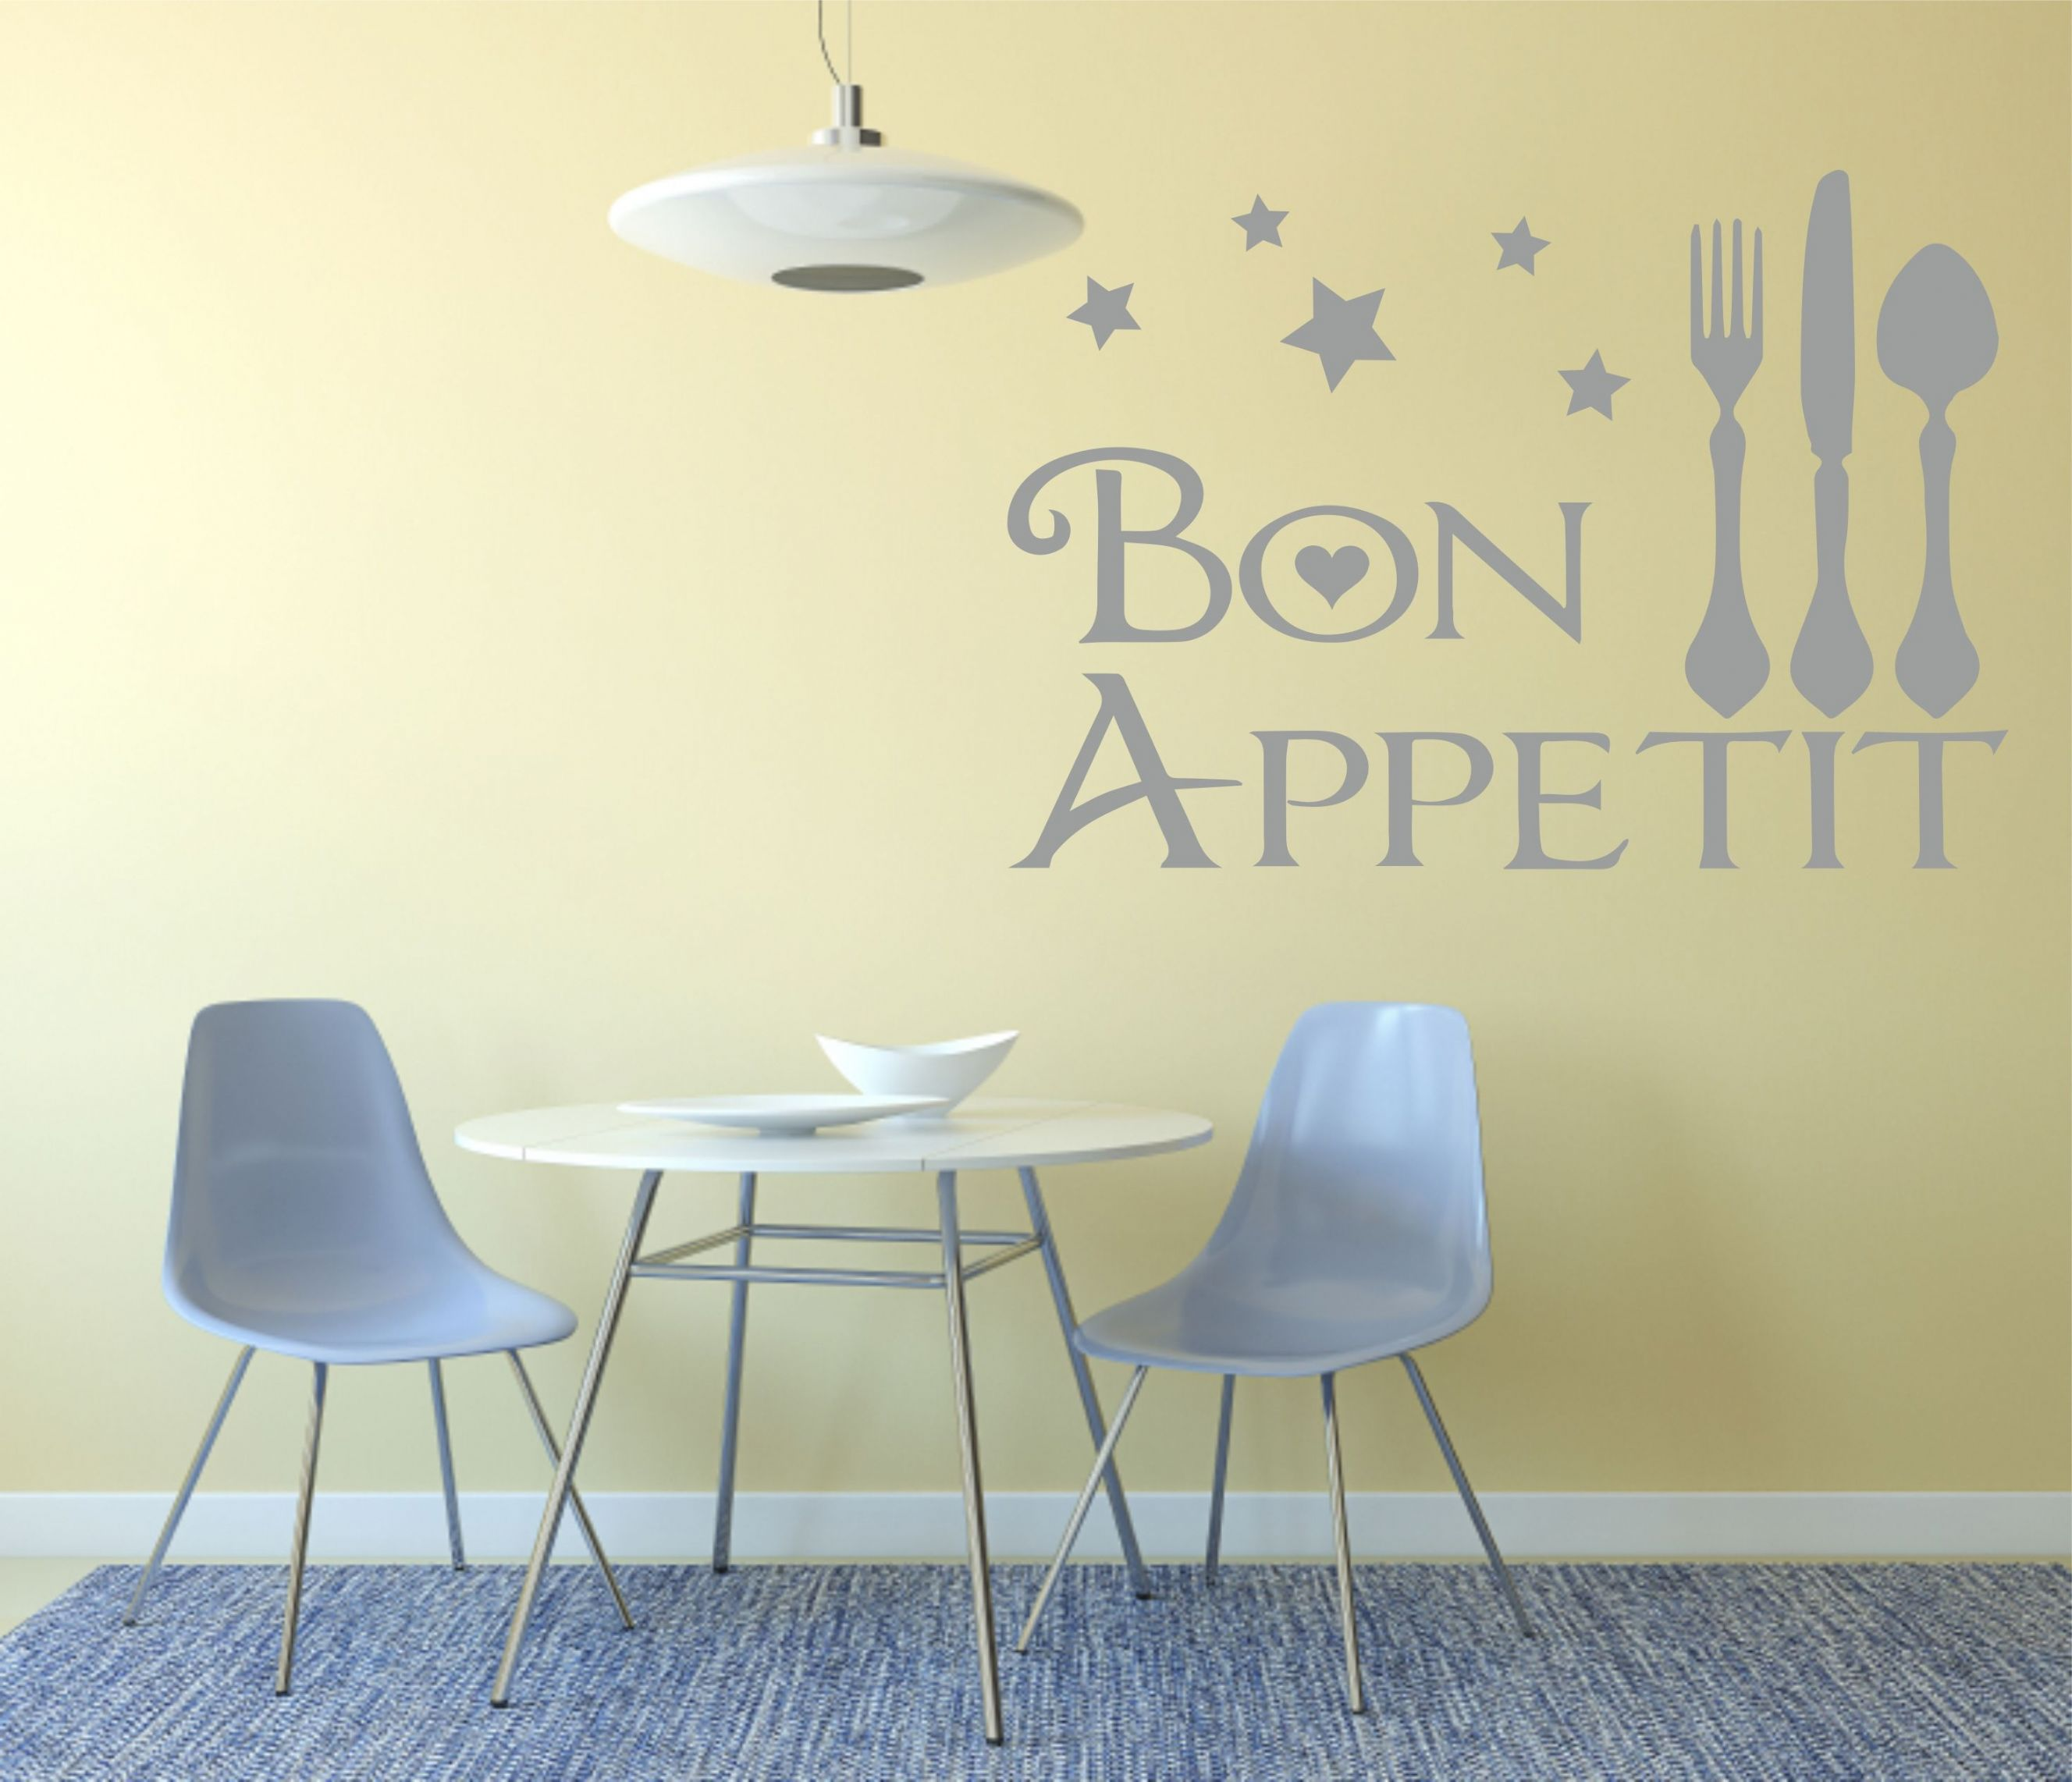 Bon appetit wall art decal kitchen dining room for Dining room wall art stickers